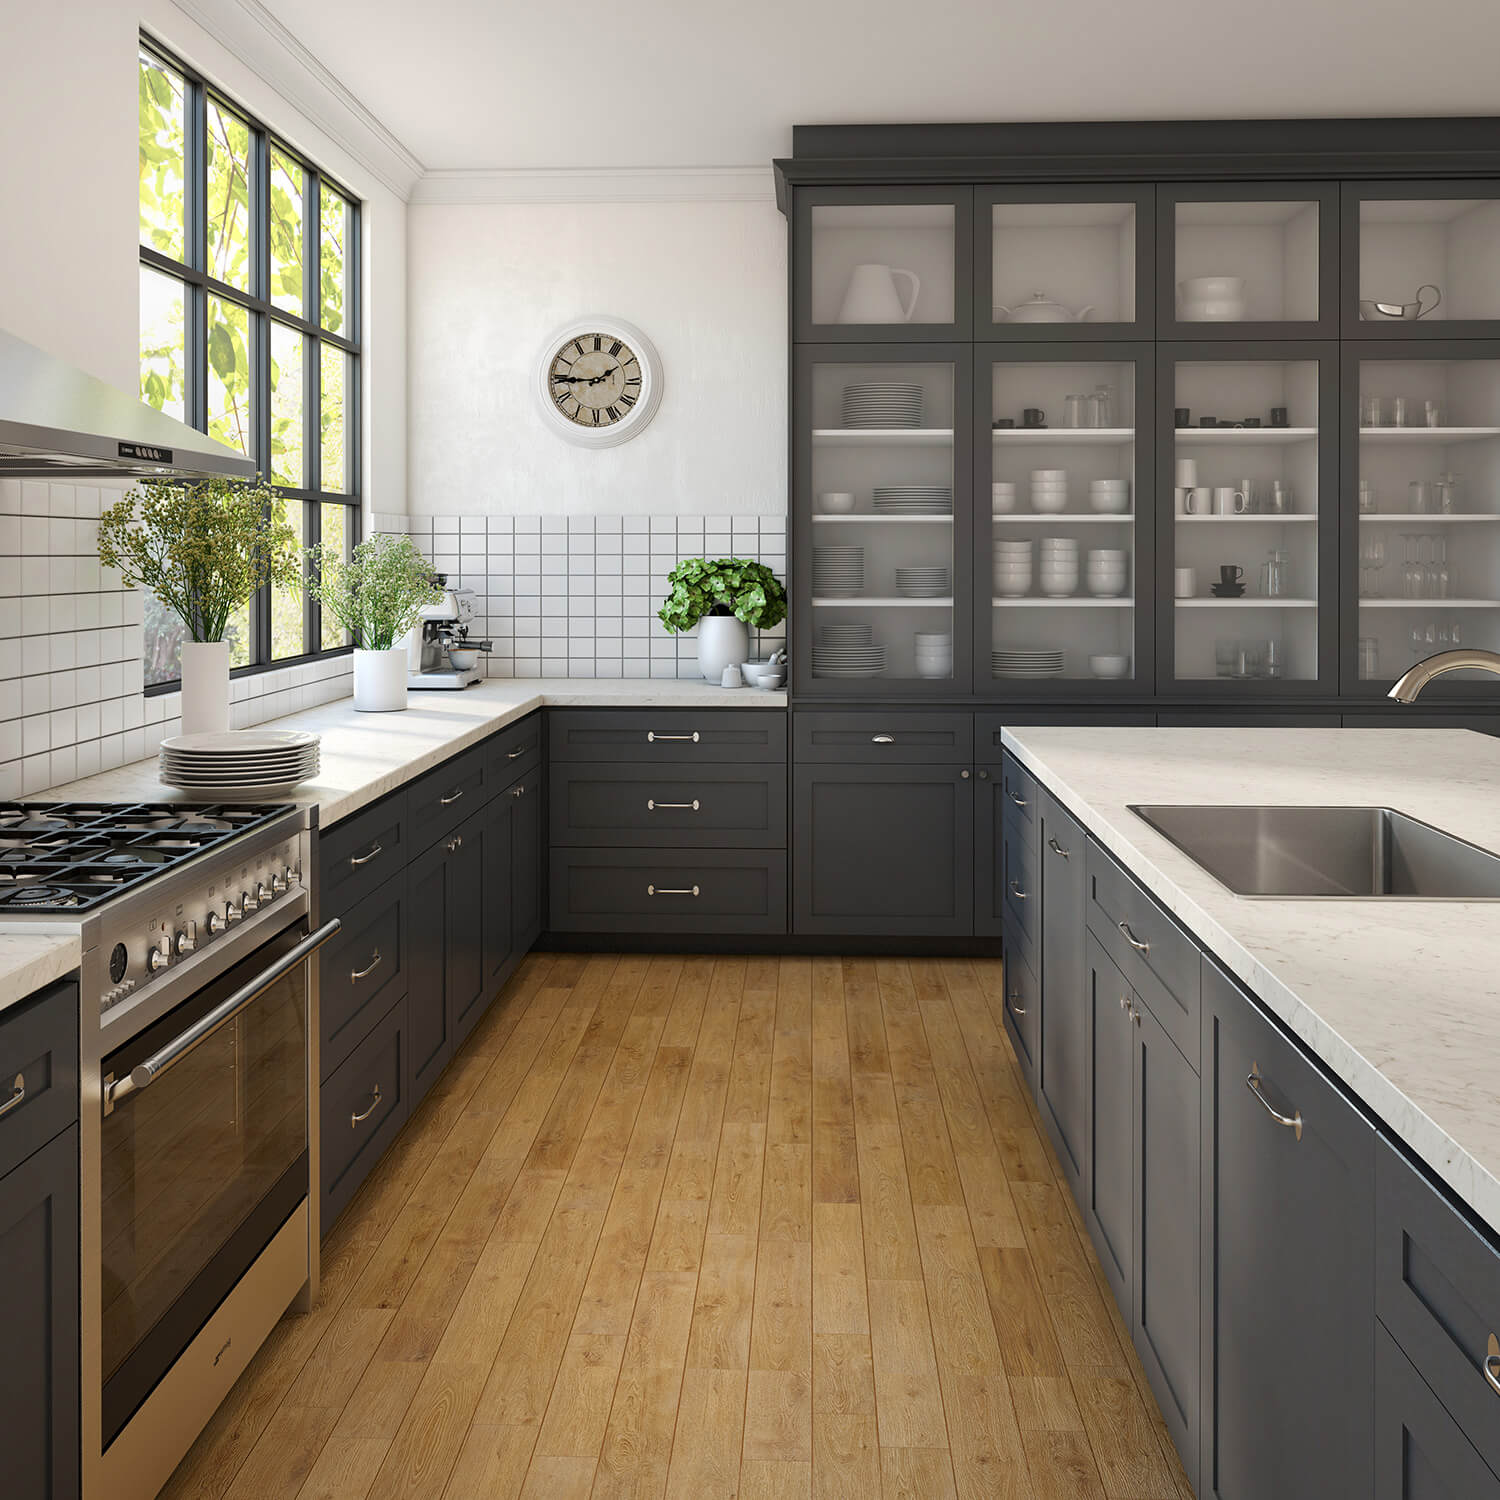 Best Small Kitchen Designs: Burleigh Laminated Benchtops